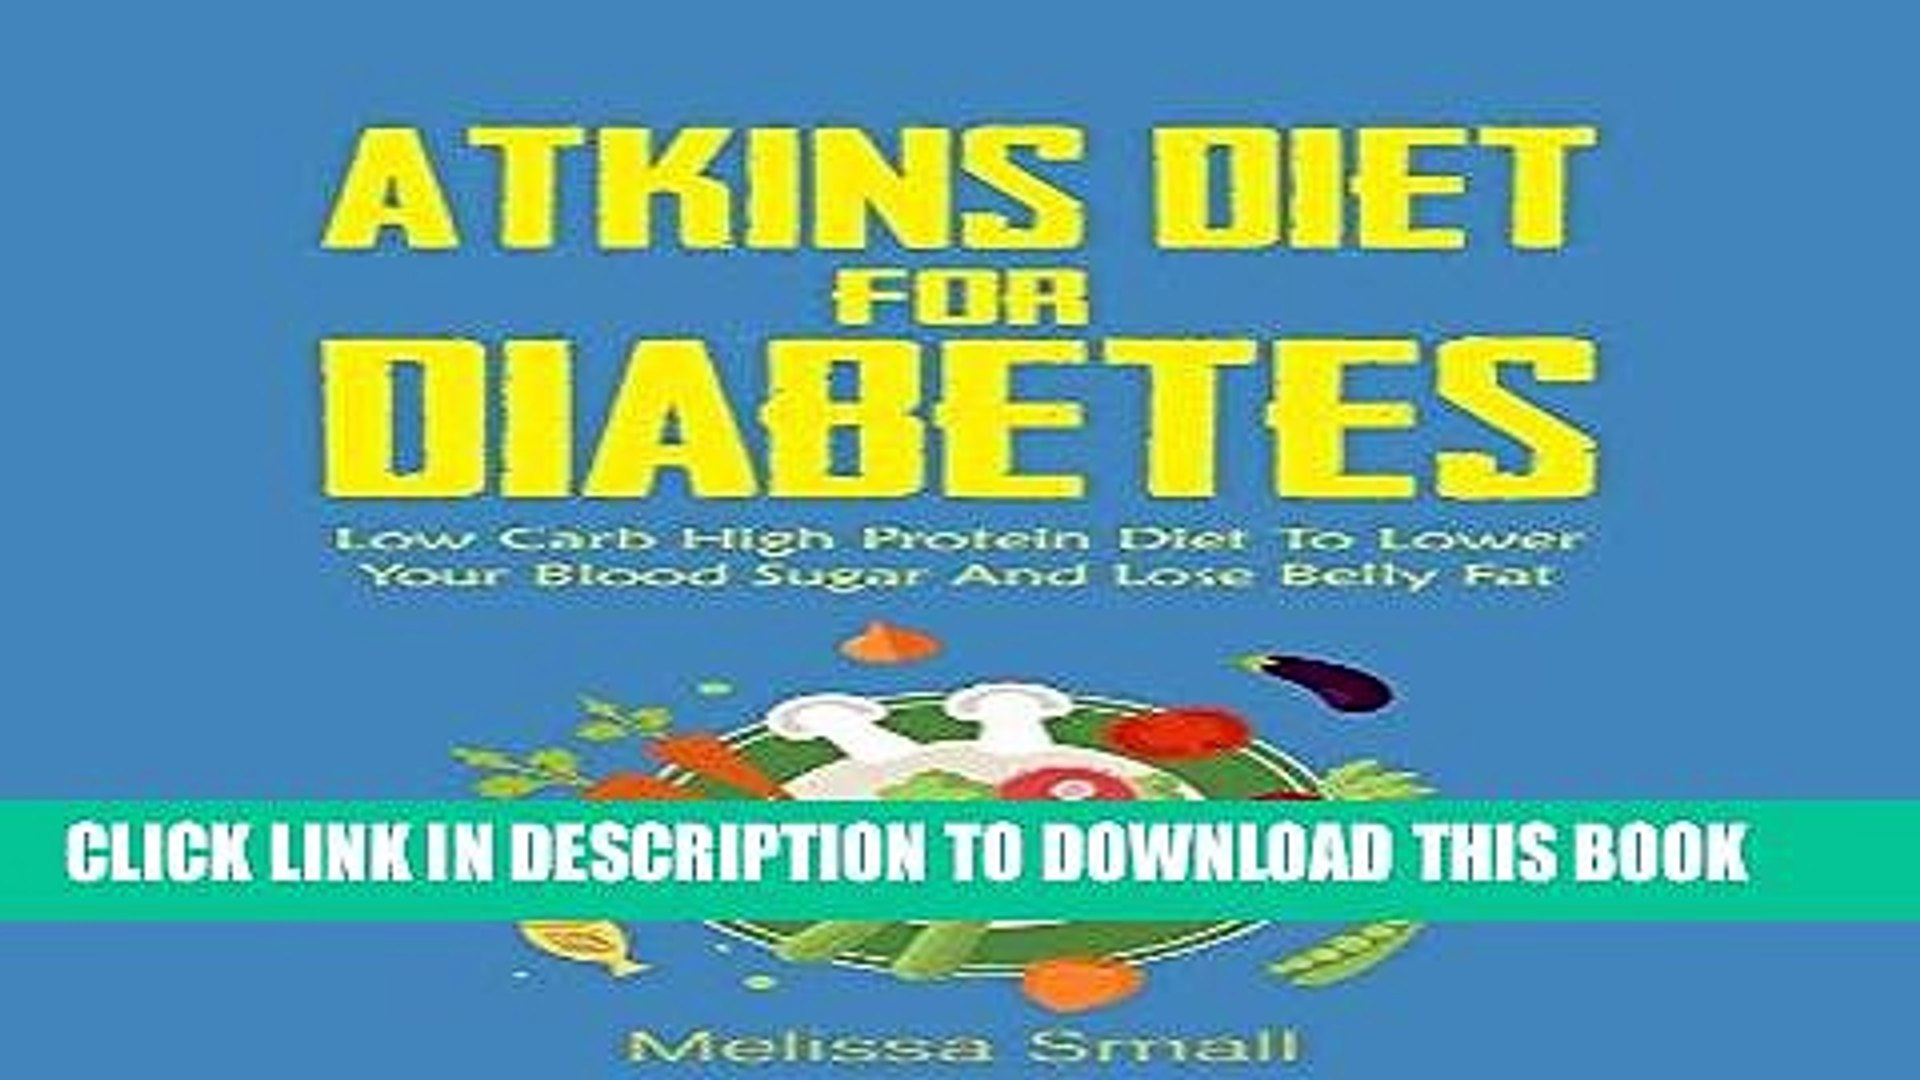 Pdf Atkins Diet Atkins Diet For Diabetes Low Carb High Protein Diet To Lower Your Blood Sugar Video Dailymotion